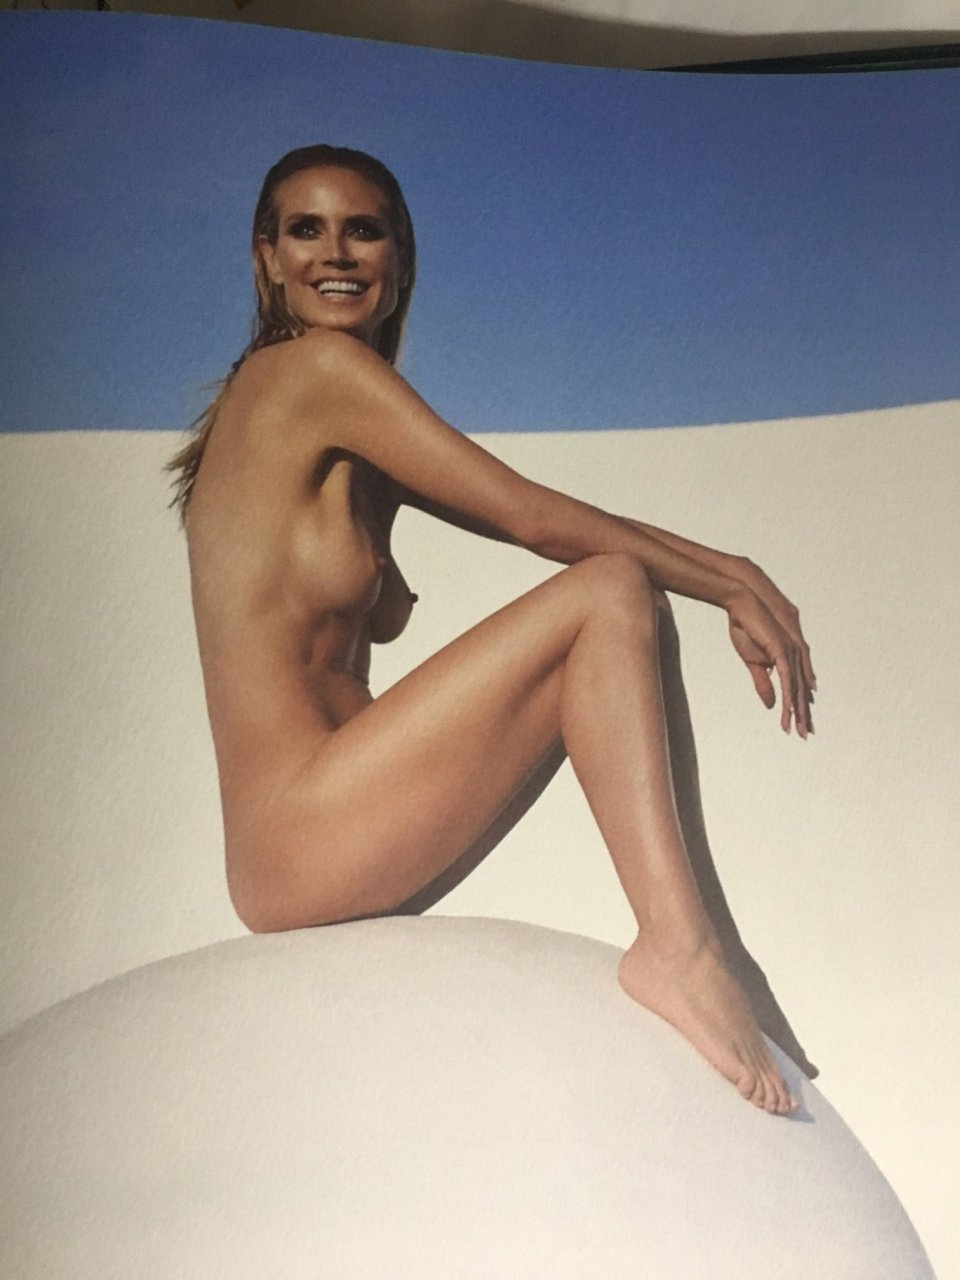 naked heidi klum photos jpg 1152x768